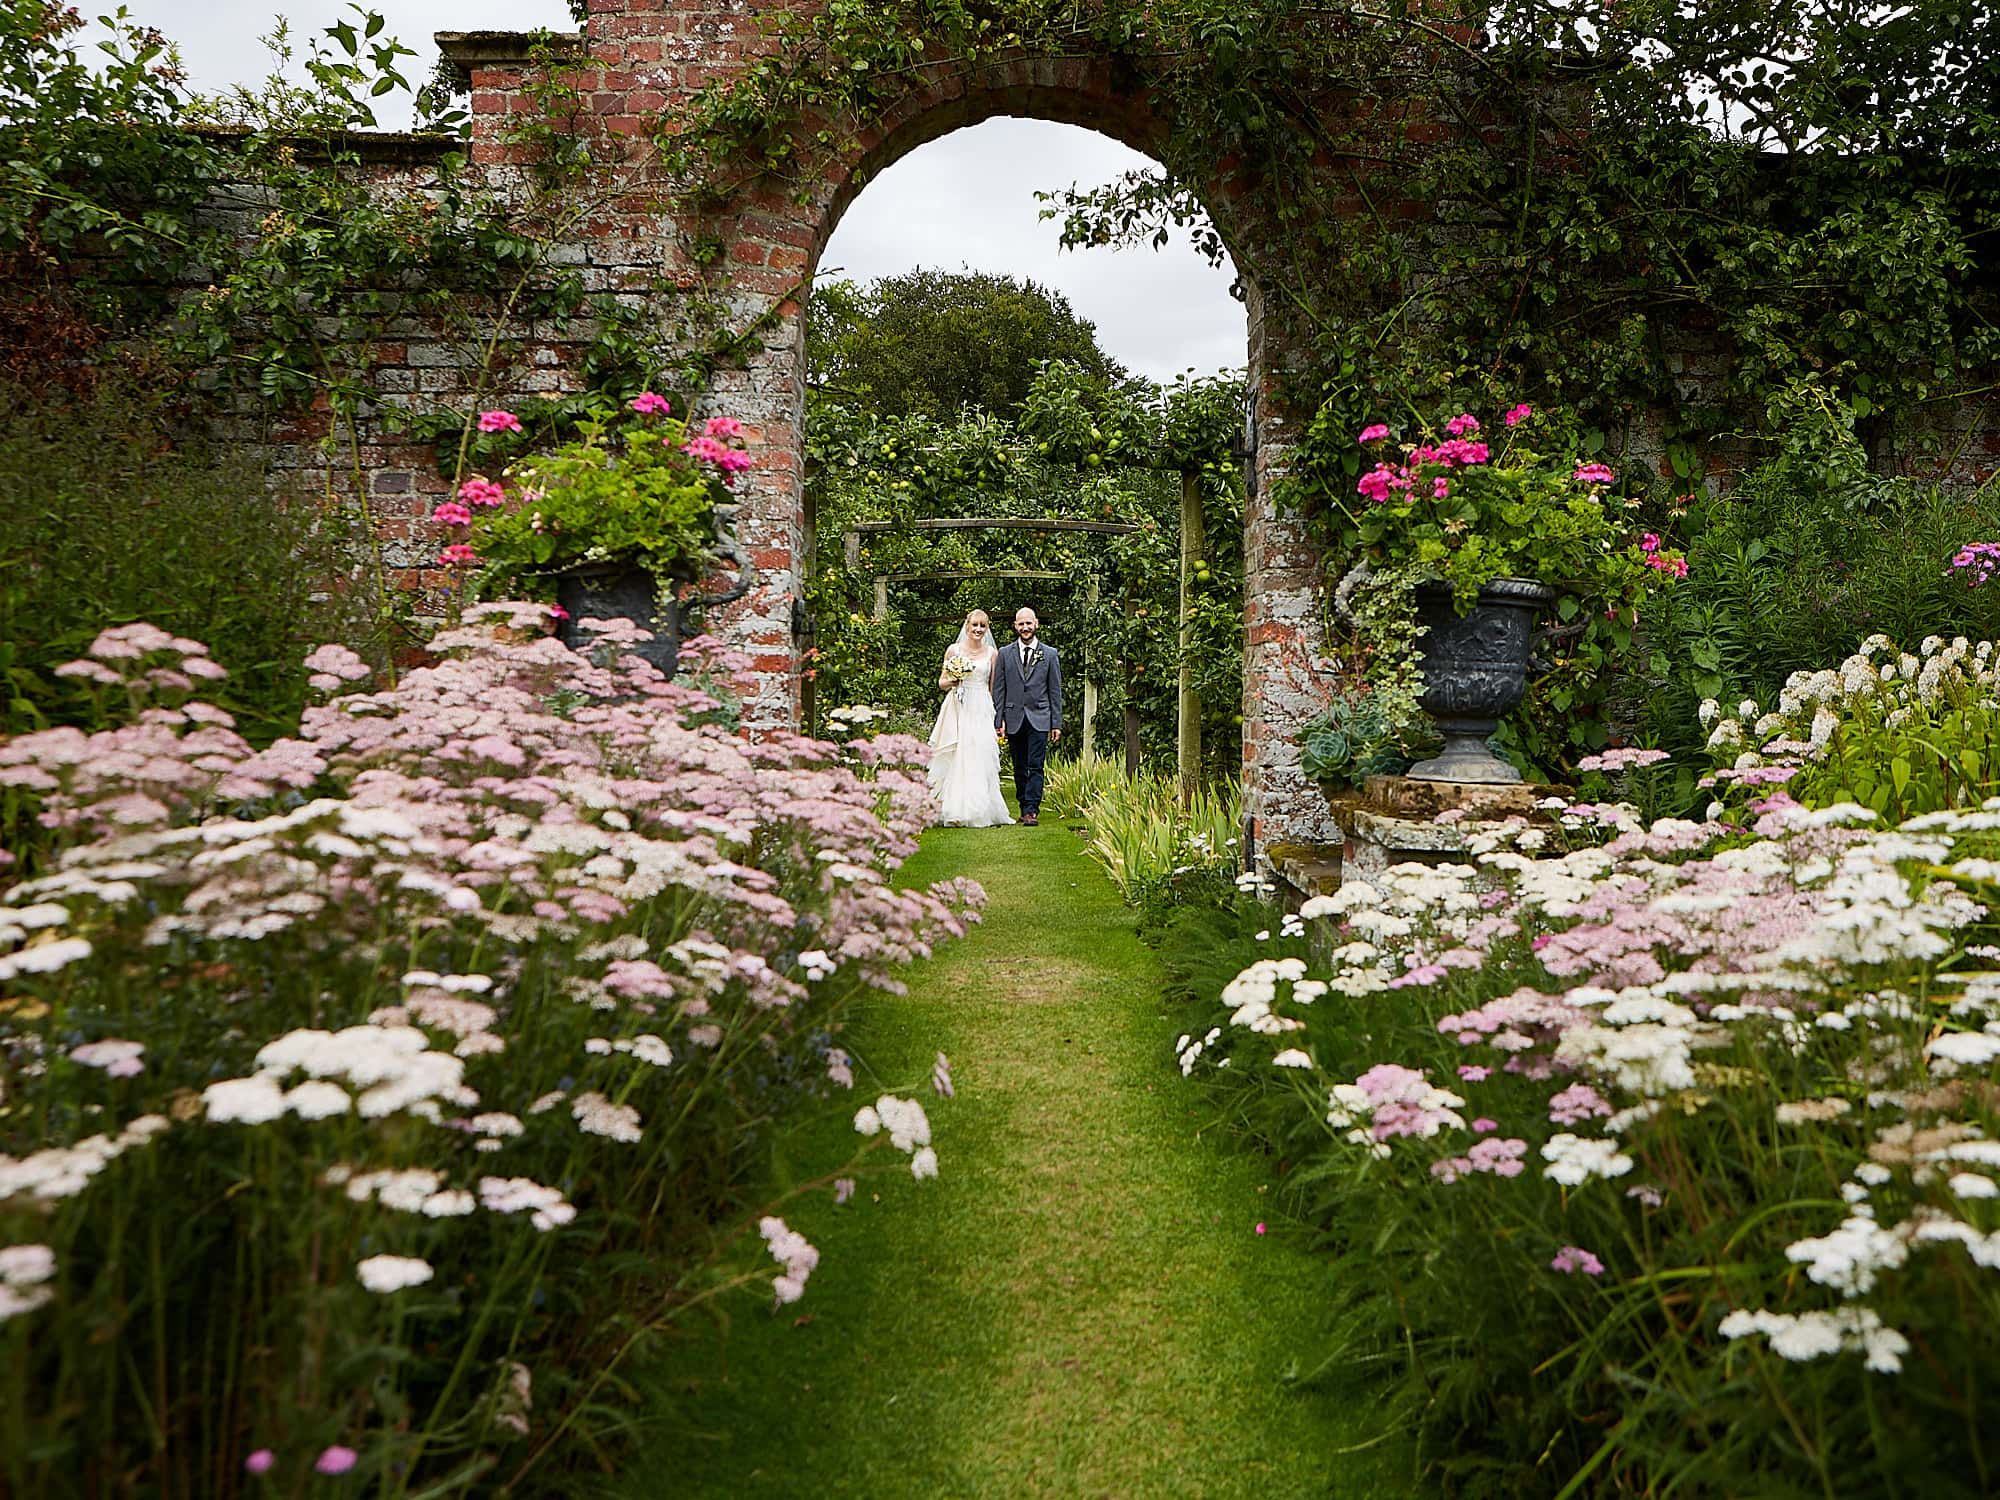 A couple walk through the gradens of National Trust wedding venue Gunby Hall in Lincolnshire. Th couple walk through an arch with flowers blooming in the garden.